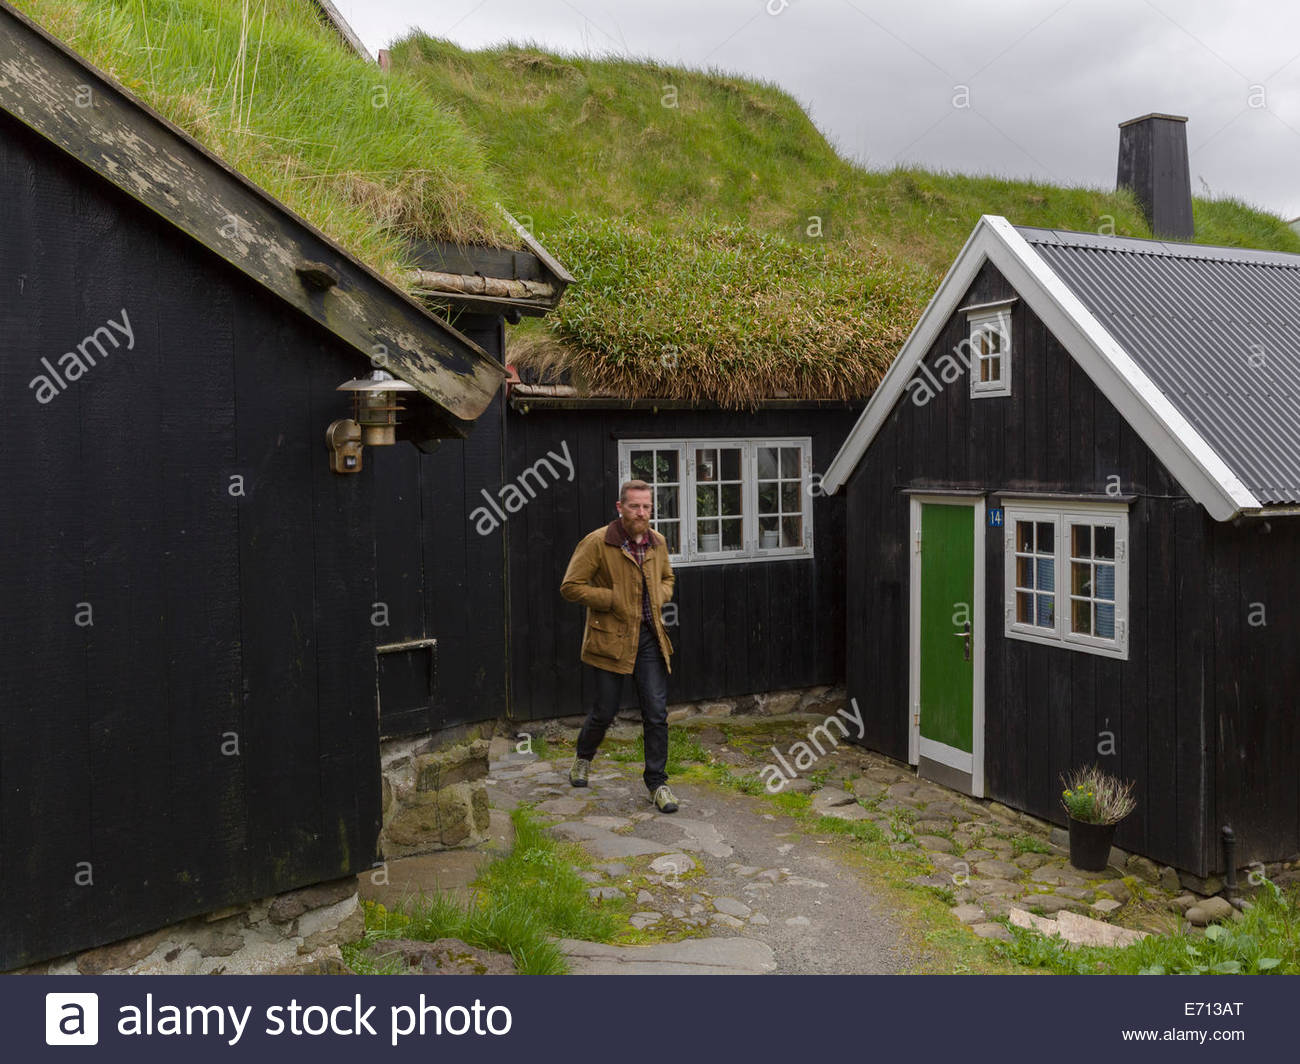 Man outside house, Torshavn, Faroe Islands, Denmark - Stock Image